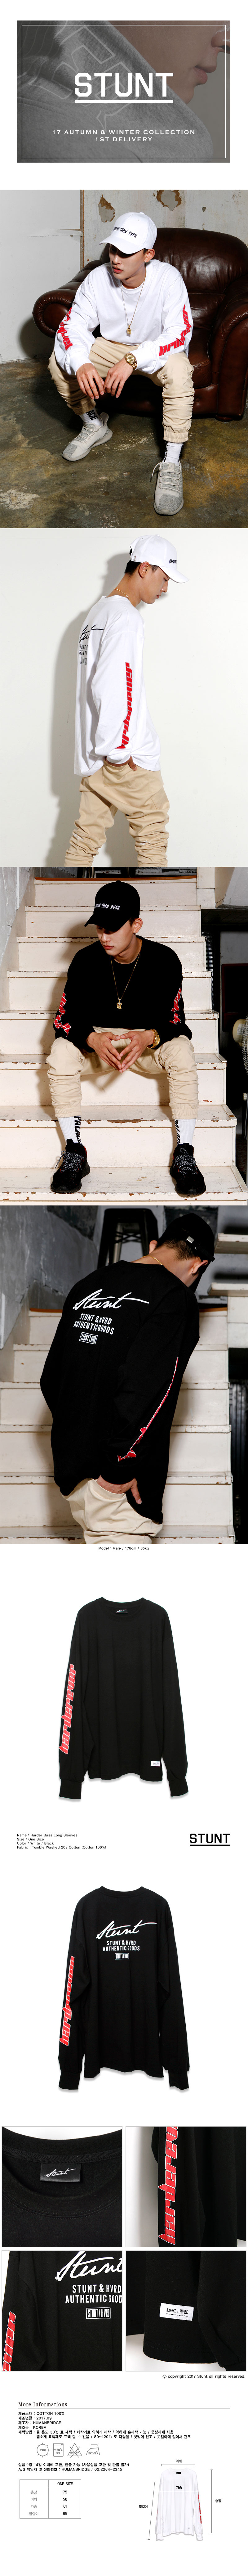 harder-bass-long-sleeves-(black).jpg